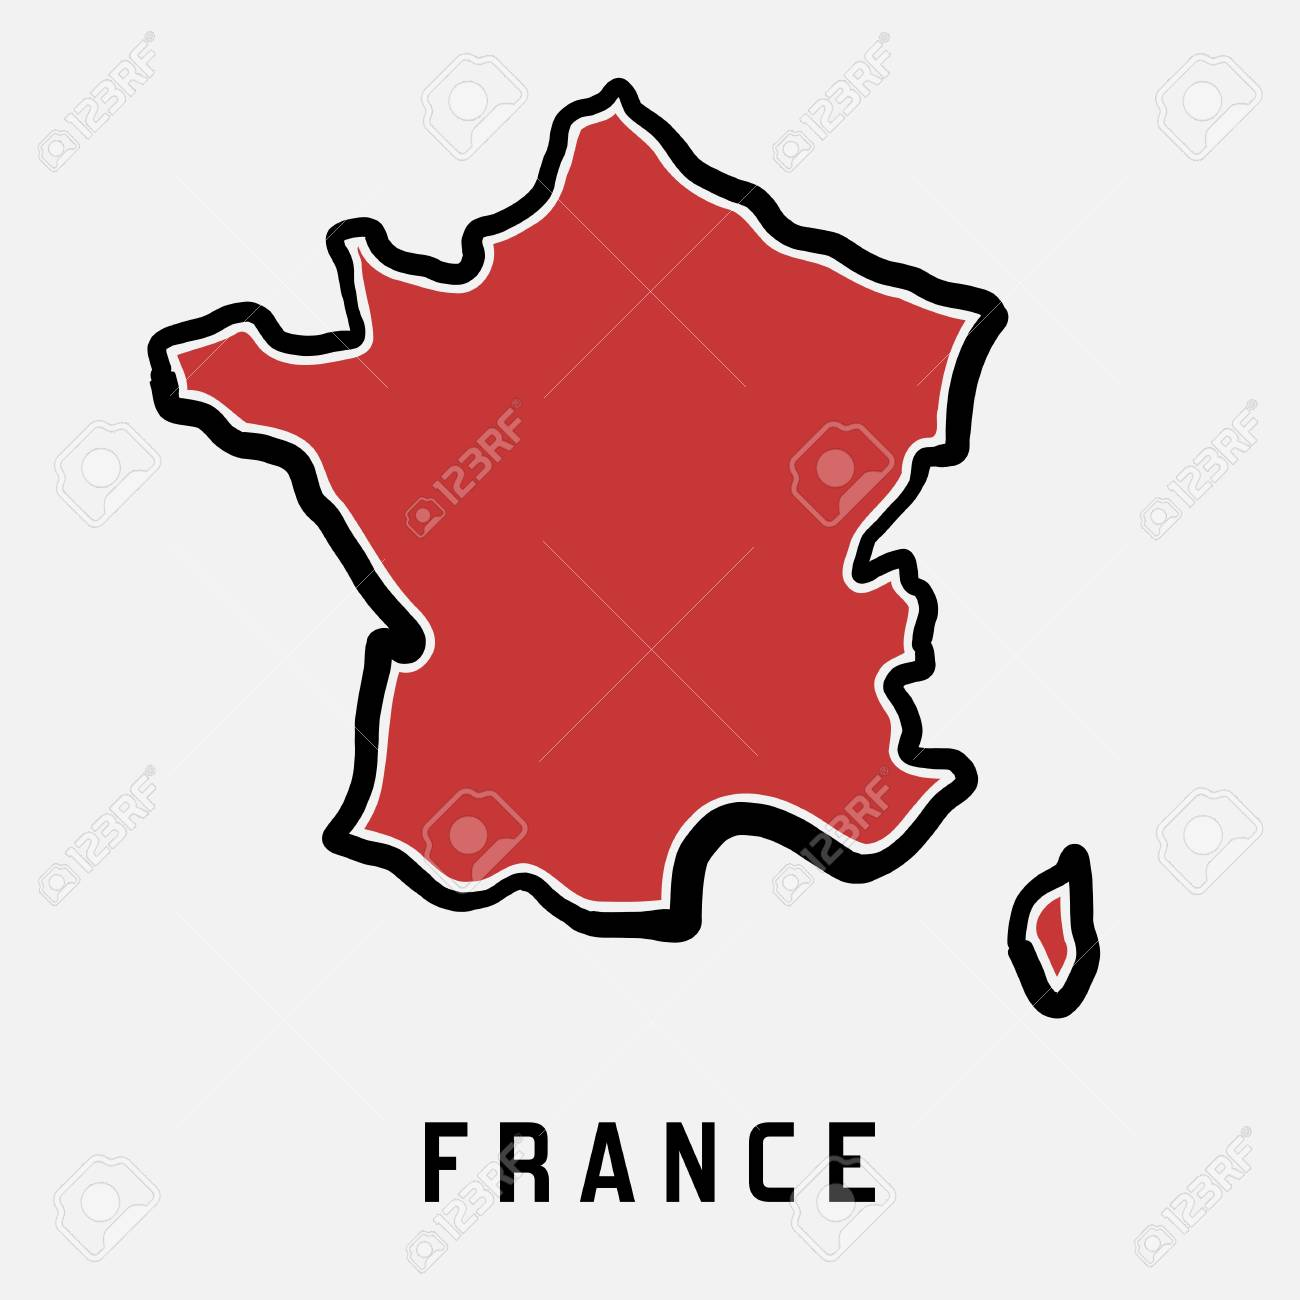 France Simple Map Outline Simplified Country Shape Map Vector